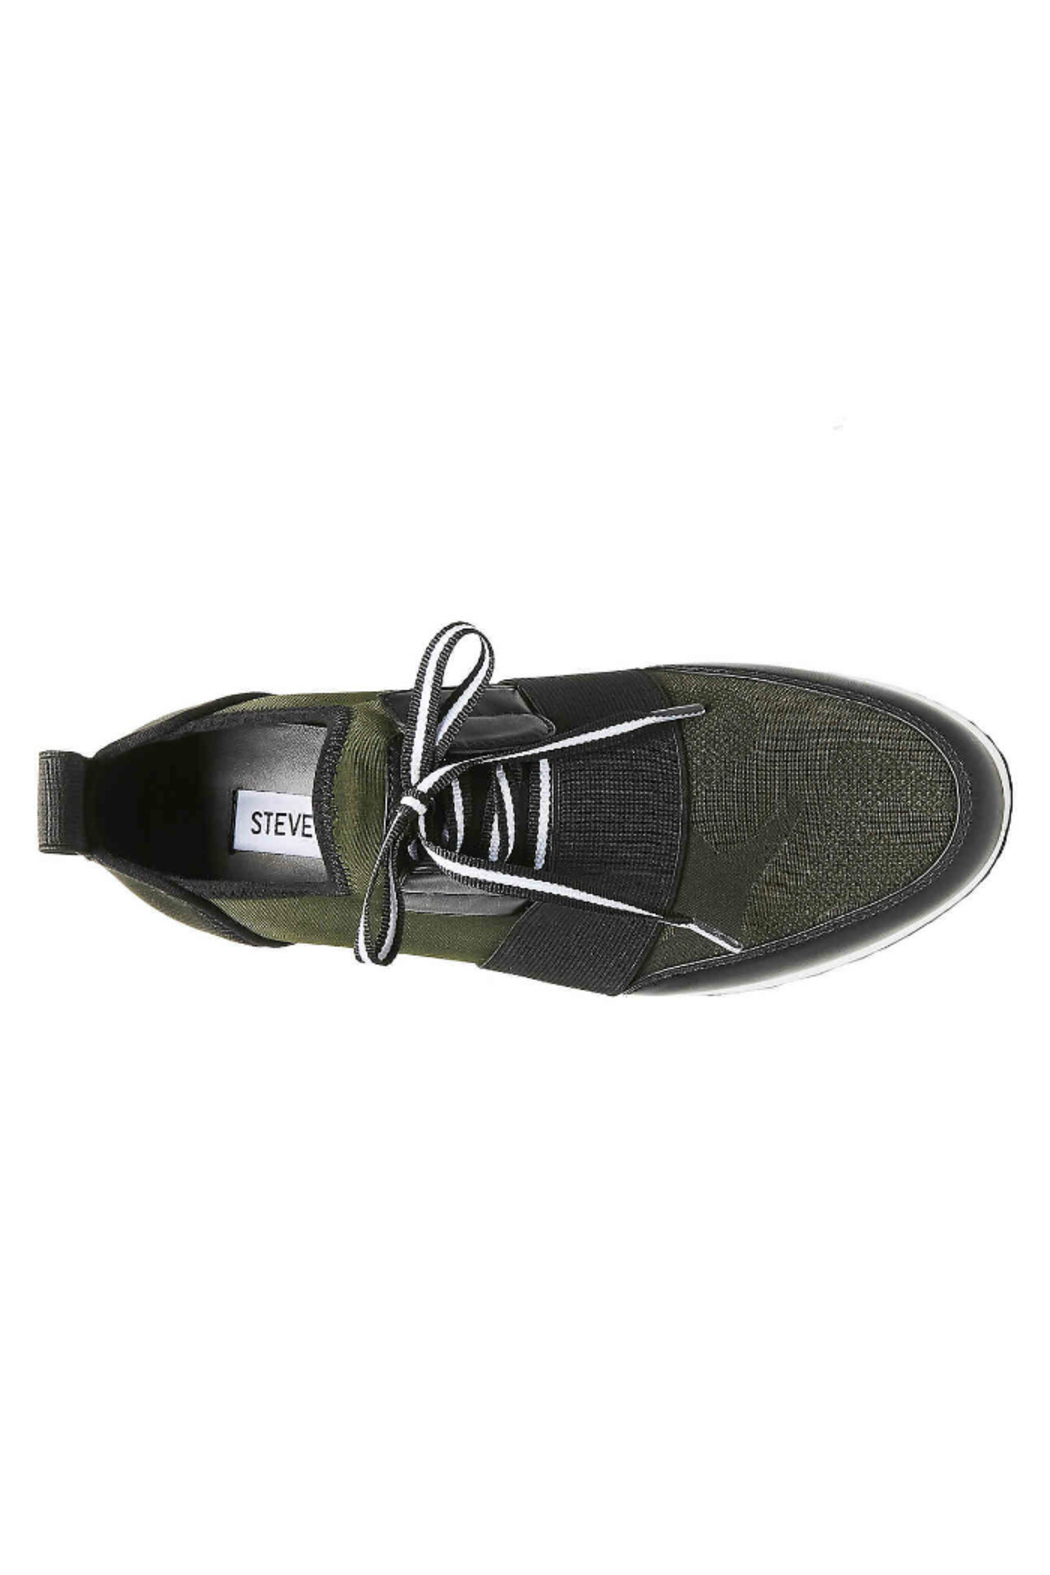 769ee59deec Steve Madden Antics from New Jersey by Suburban Shoes — Shoptiques